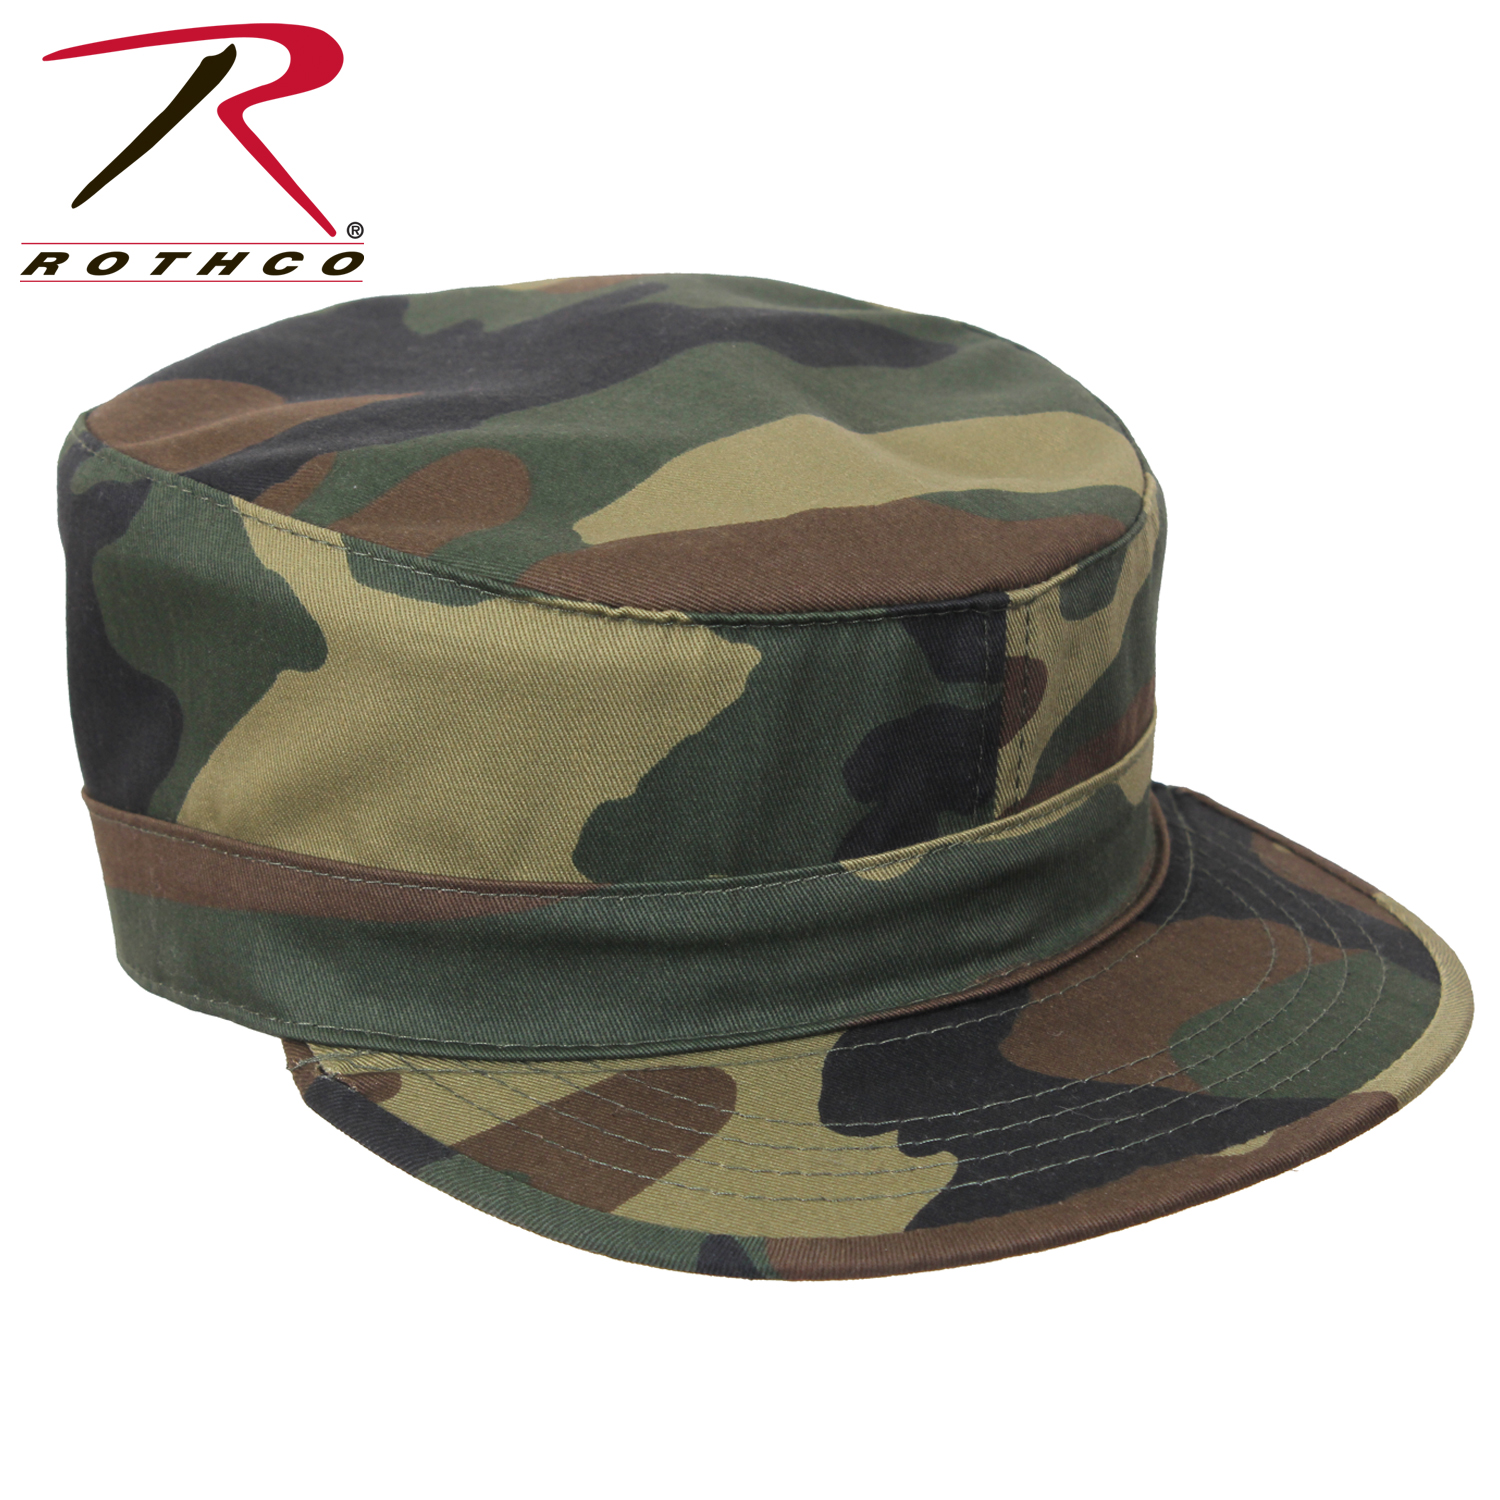 5618cc20aa0 Rothco Adjustable Camo Fatigue Cap